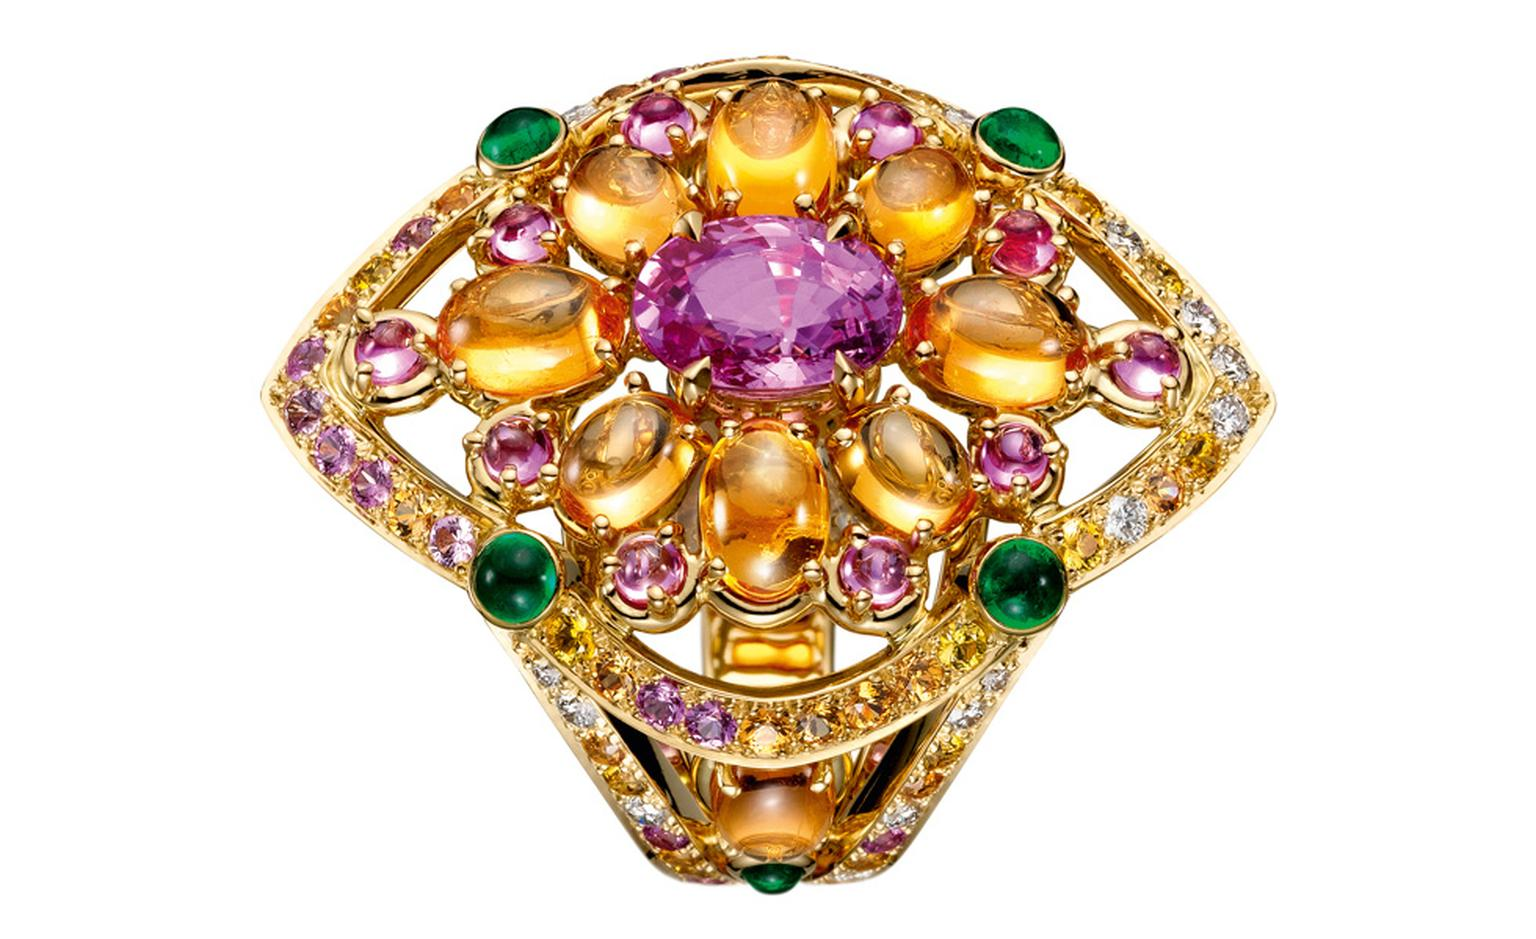 Boucheron Isola  Bella  ring,  set  with  an  oval  pink  sapphire,  paved  with  yellow,  orange  and  pink  sapphires   and  diamonds,  on  yellow  gold. POA